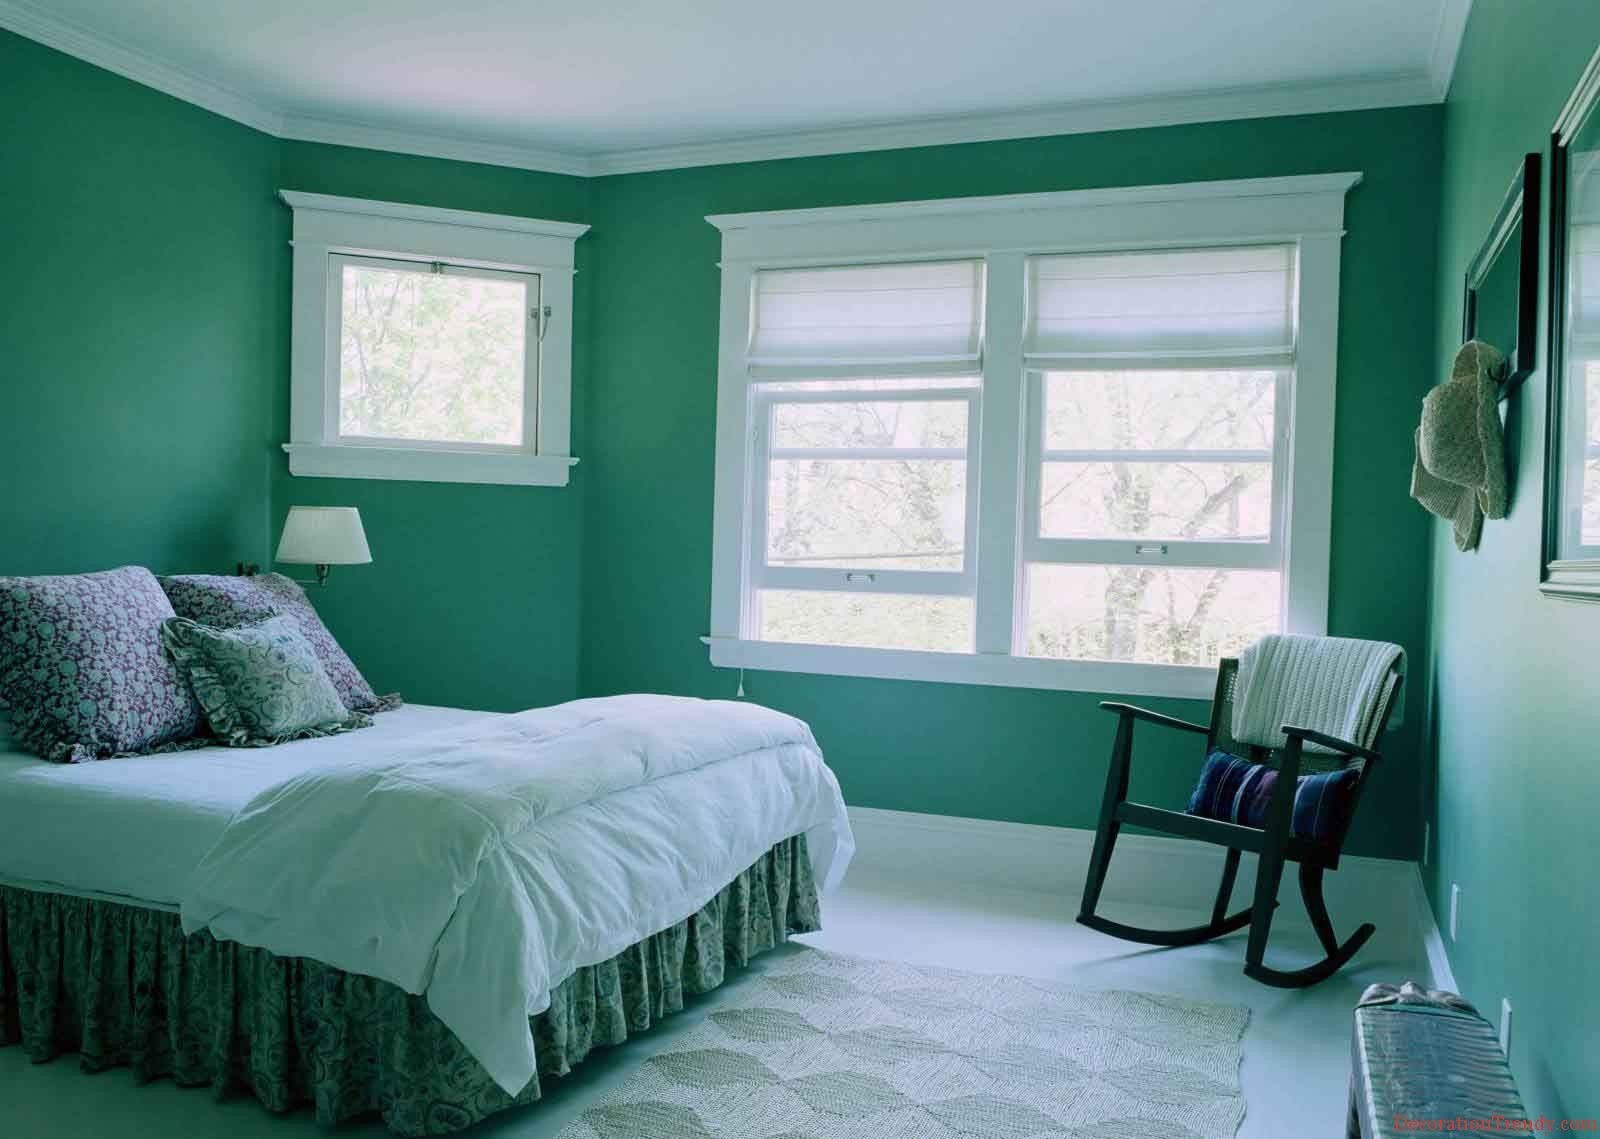 bedroom colors green. the amazing persian green bedroom color scheme with white ceiling and viridian bed - remarkable colors d